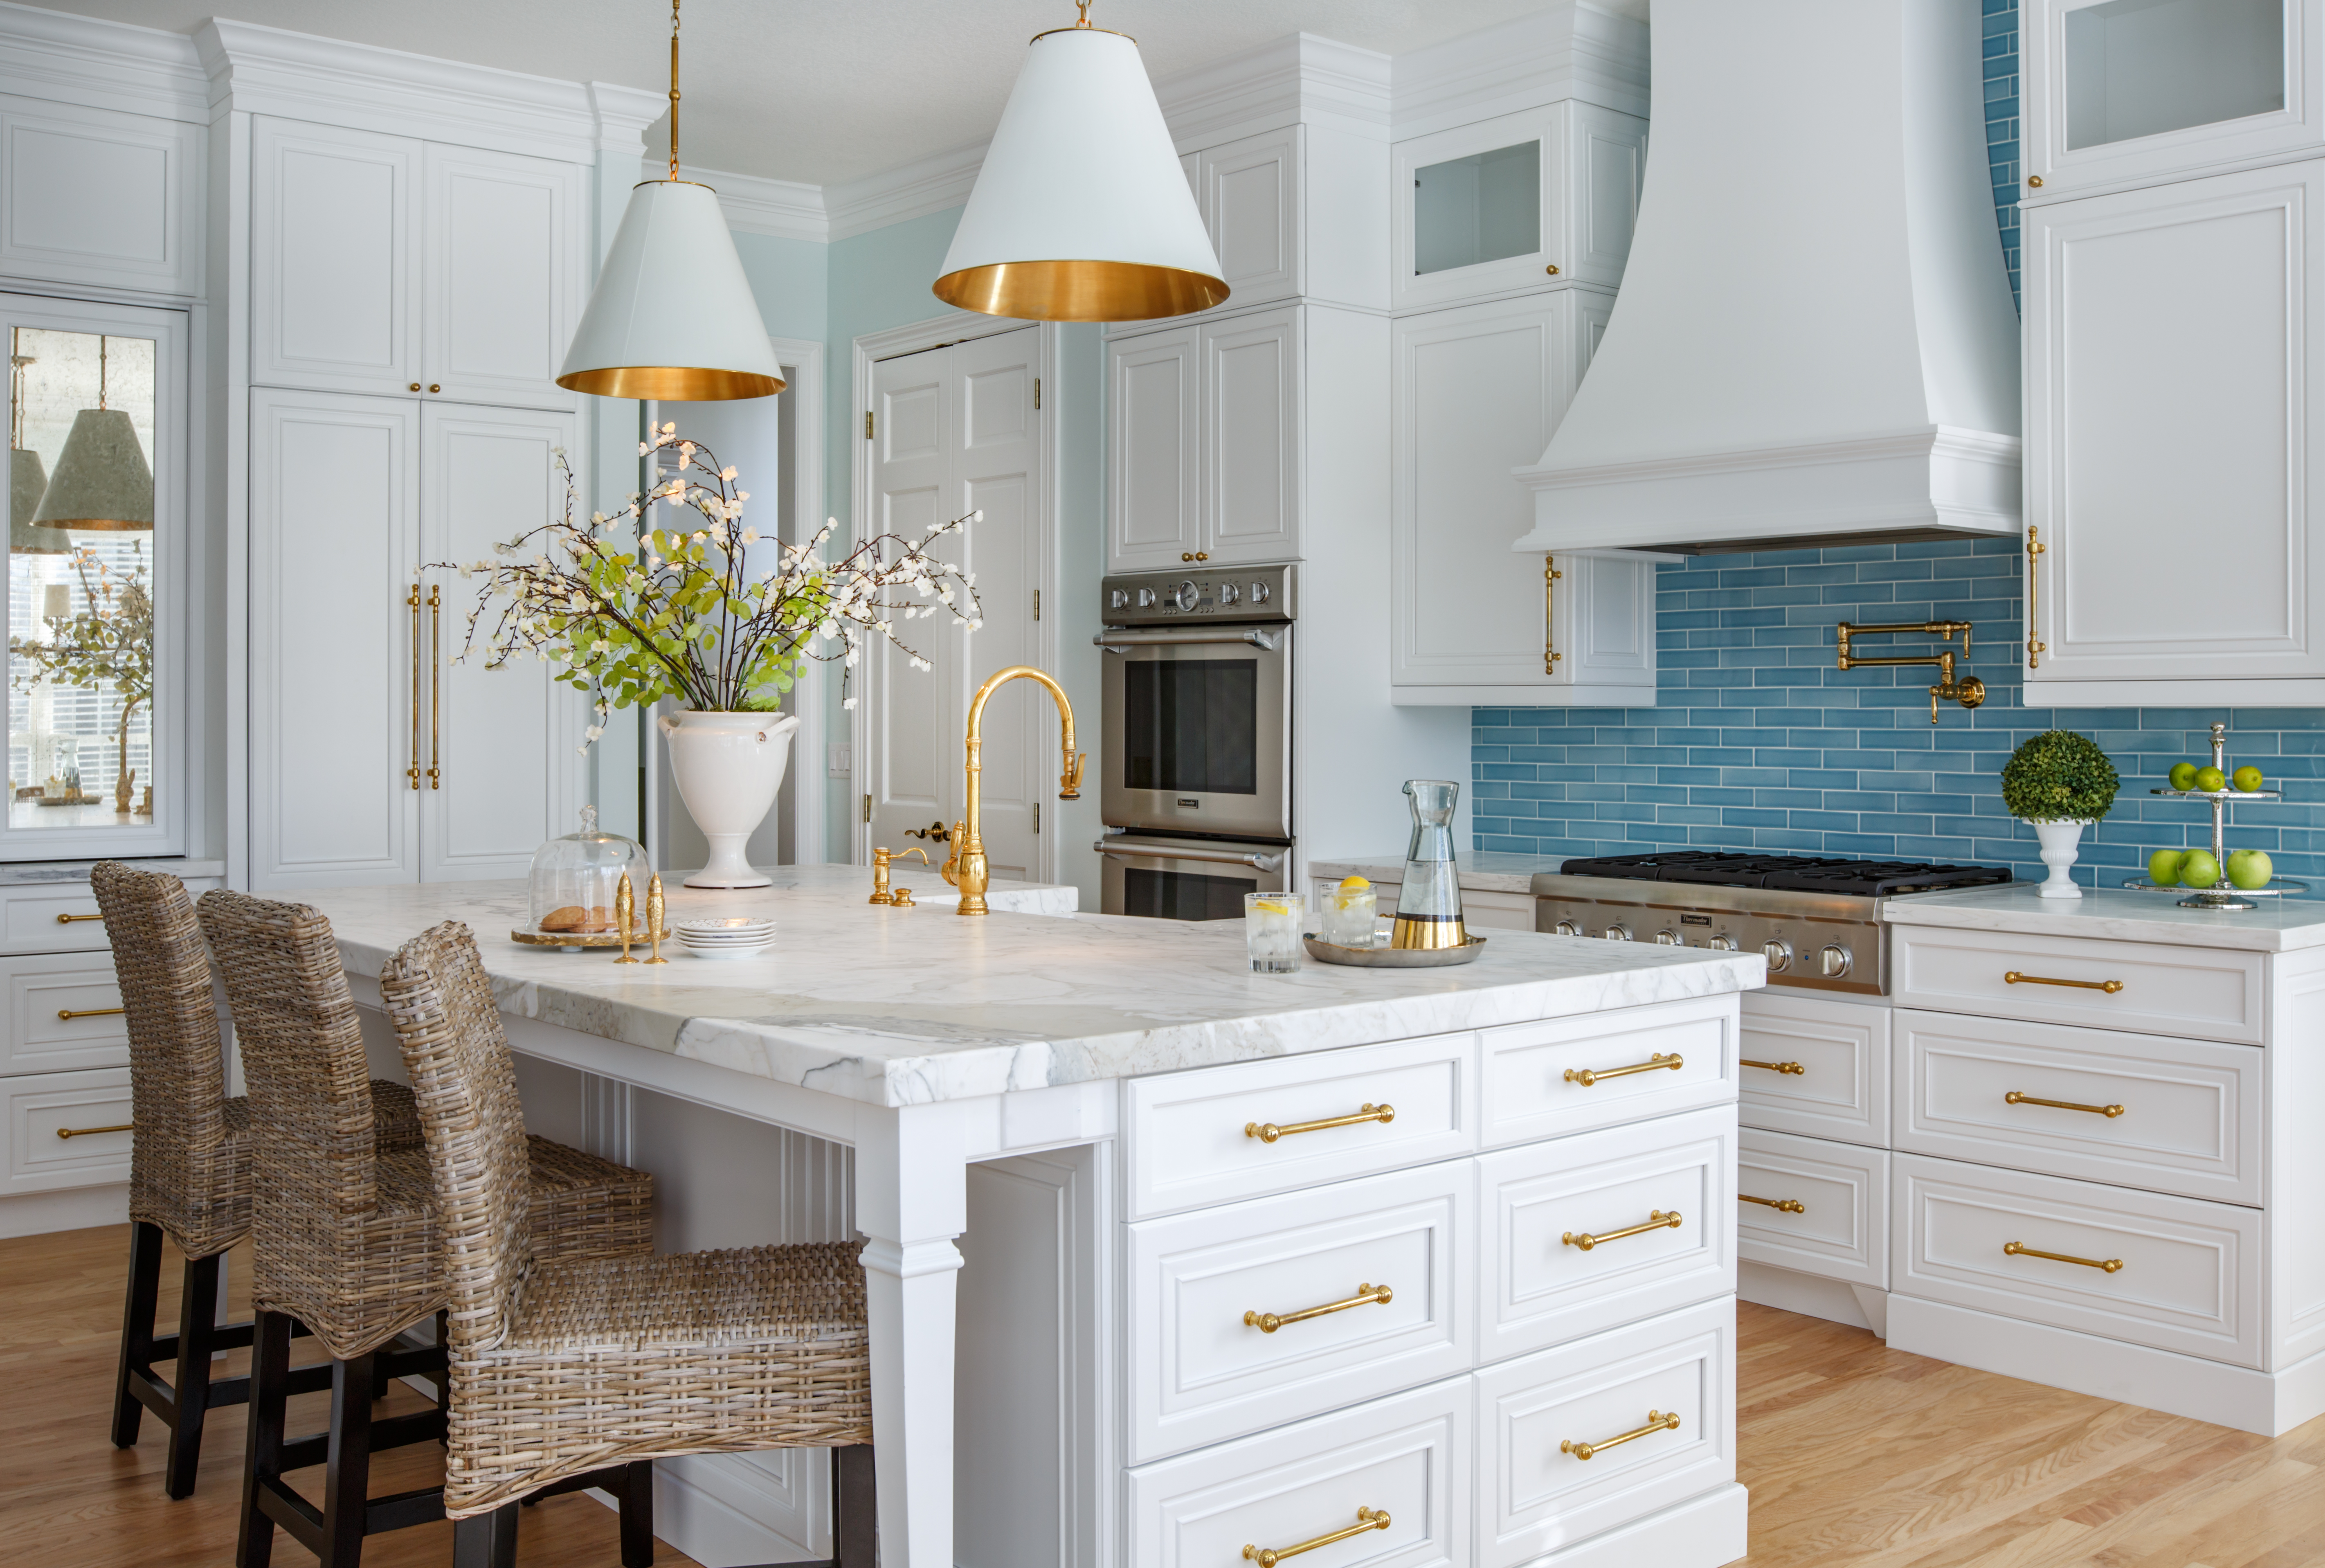 Thermador Announces National Grand Prize Winners Of Its Third Kitchen Design Challenge